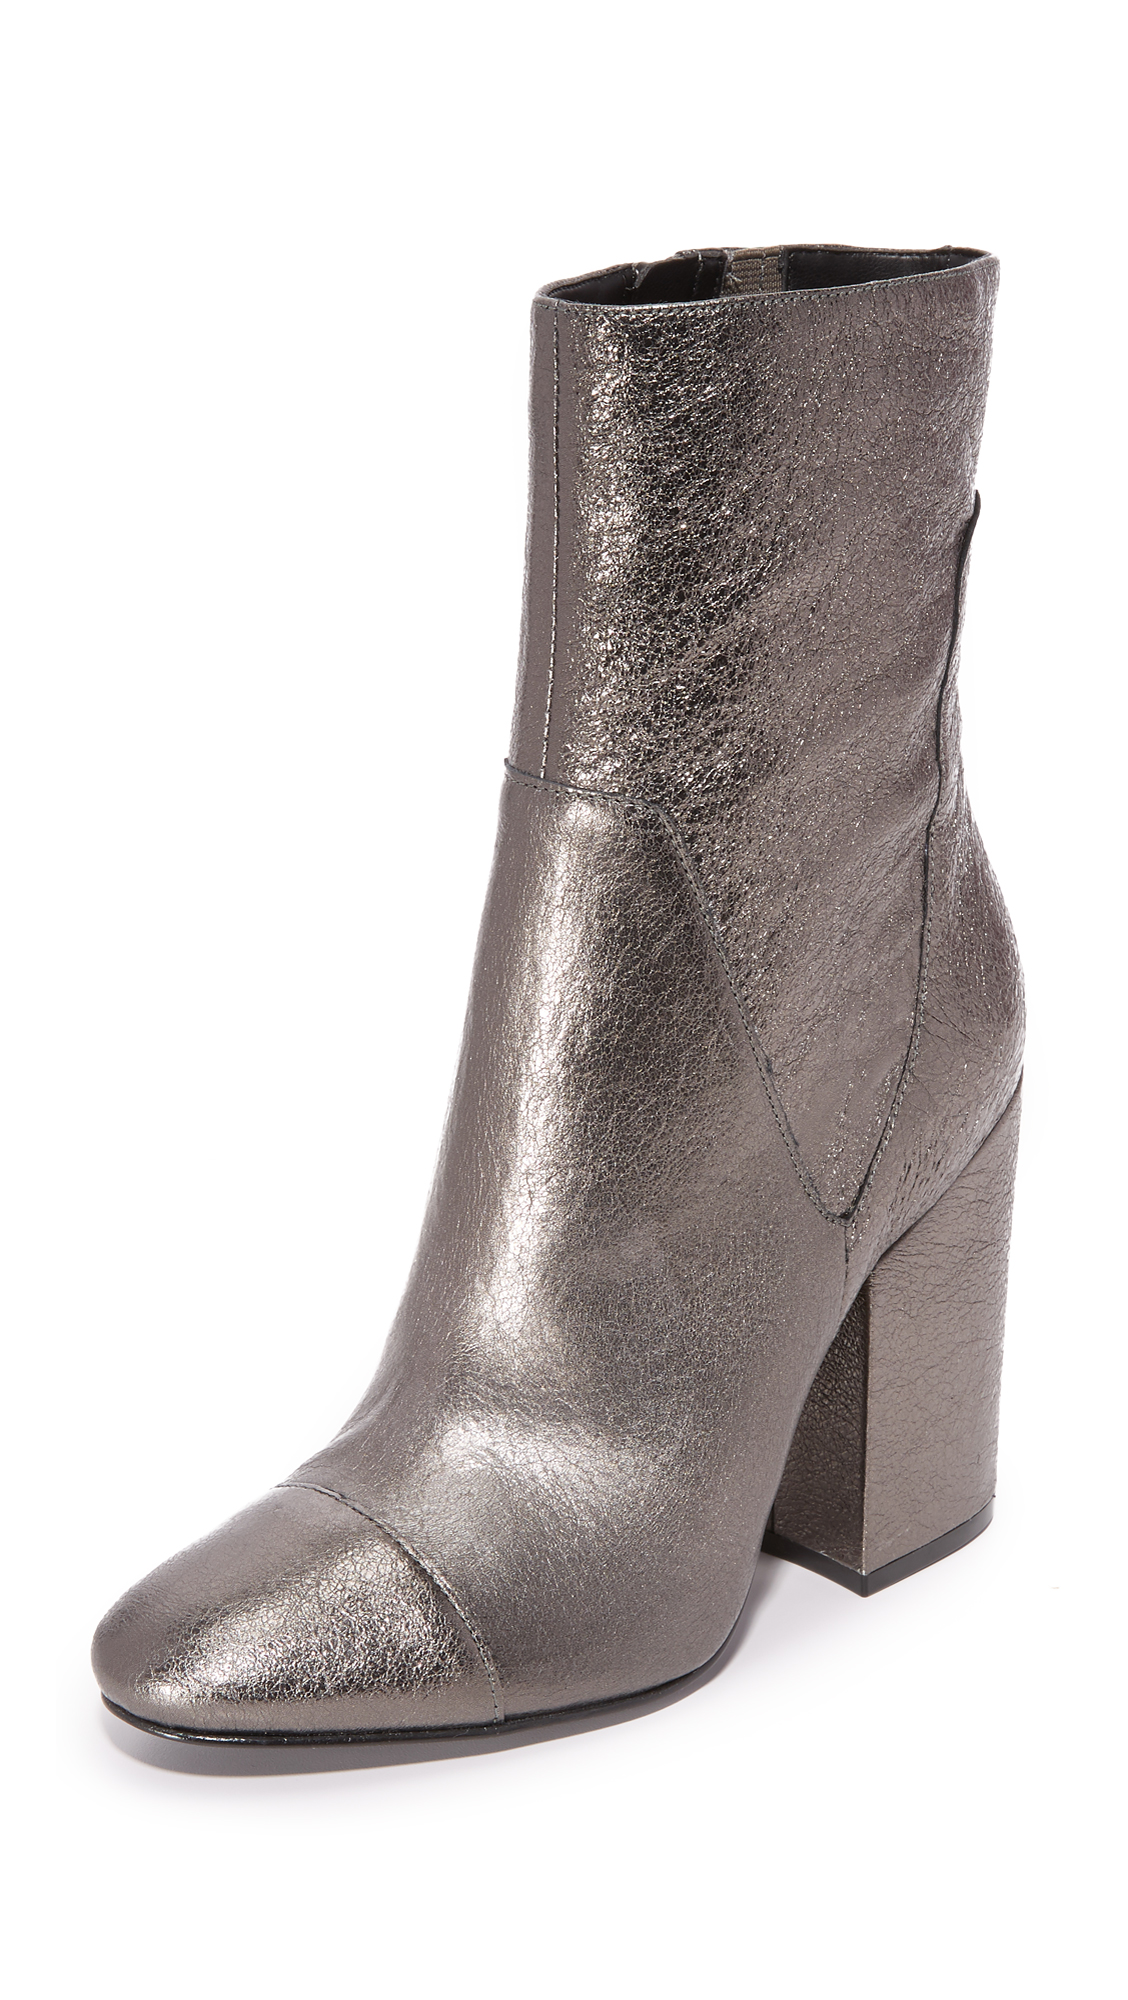 Panels of metallic leather compose these glamorous KENDALL + KYLIE booties. Inset elastic at the top line and exposed side zip. Chunky, covered heel and synthetic sole. Leather: Sheepskin. Imported, China. This item cannot be gift boxed.